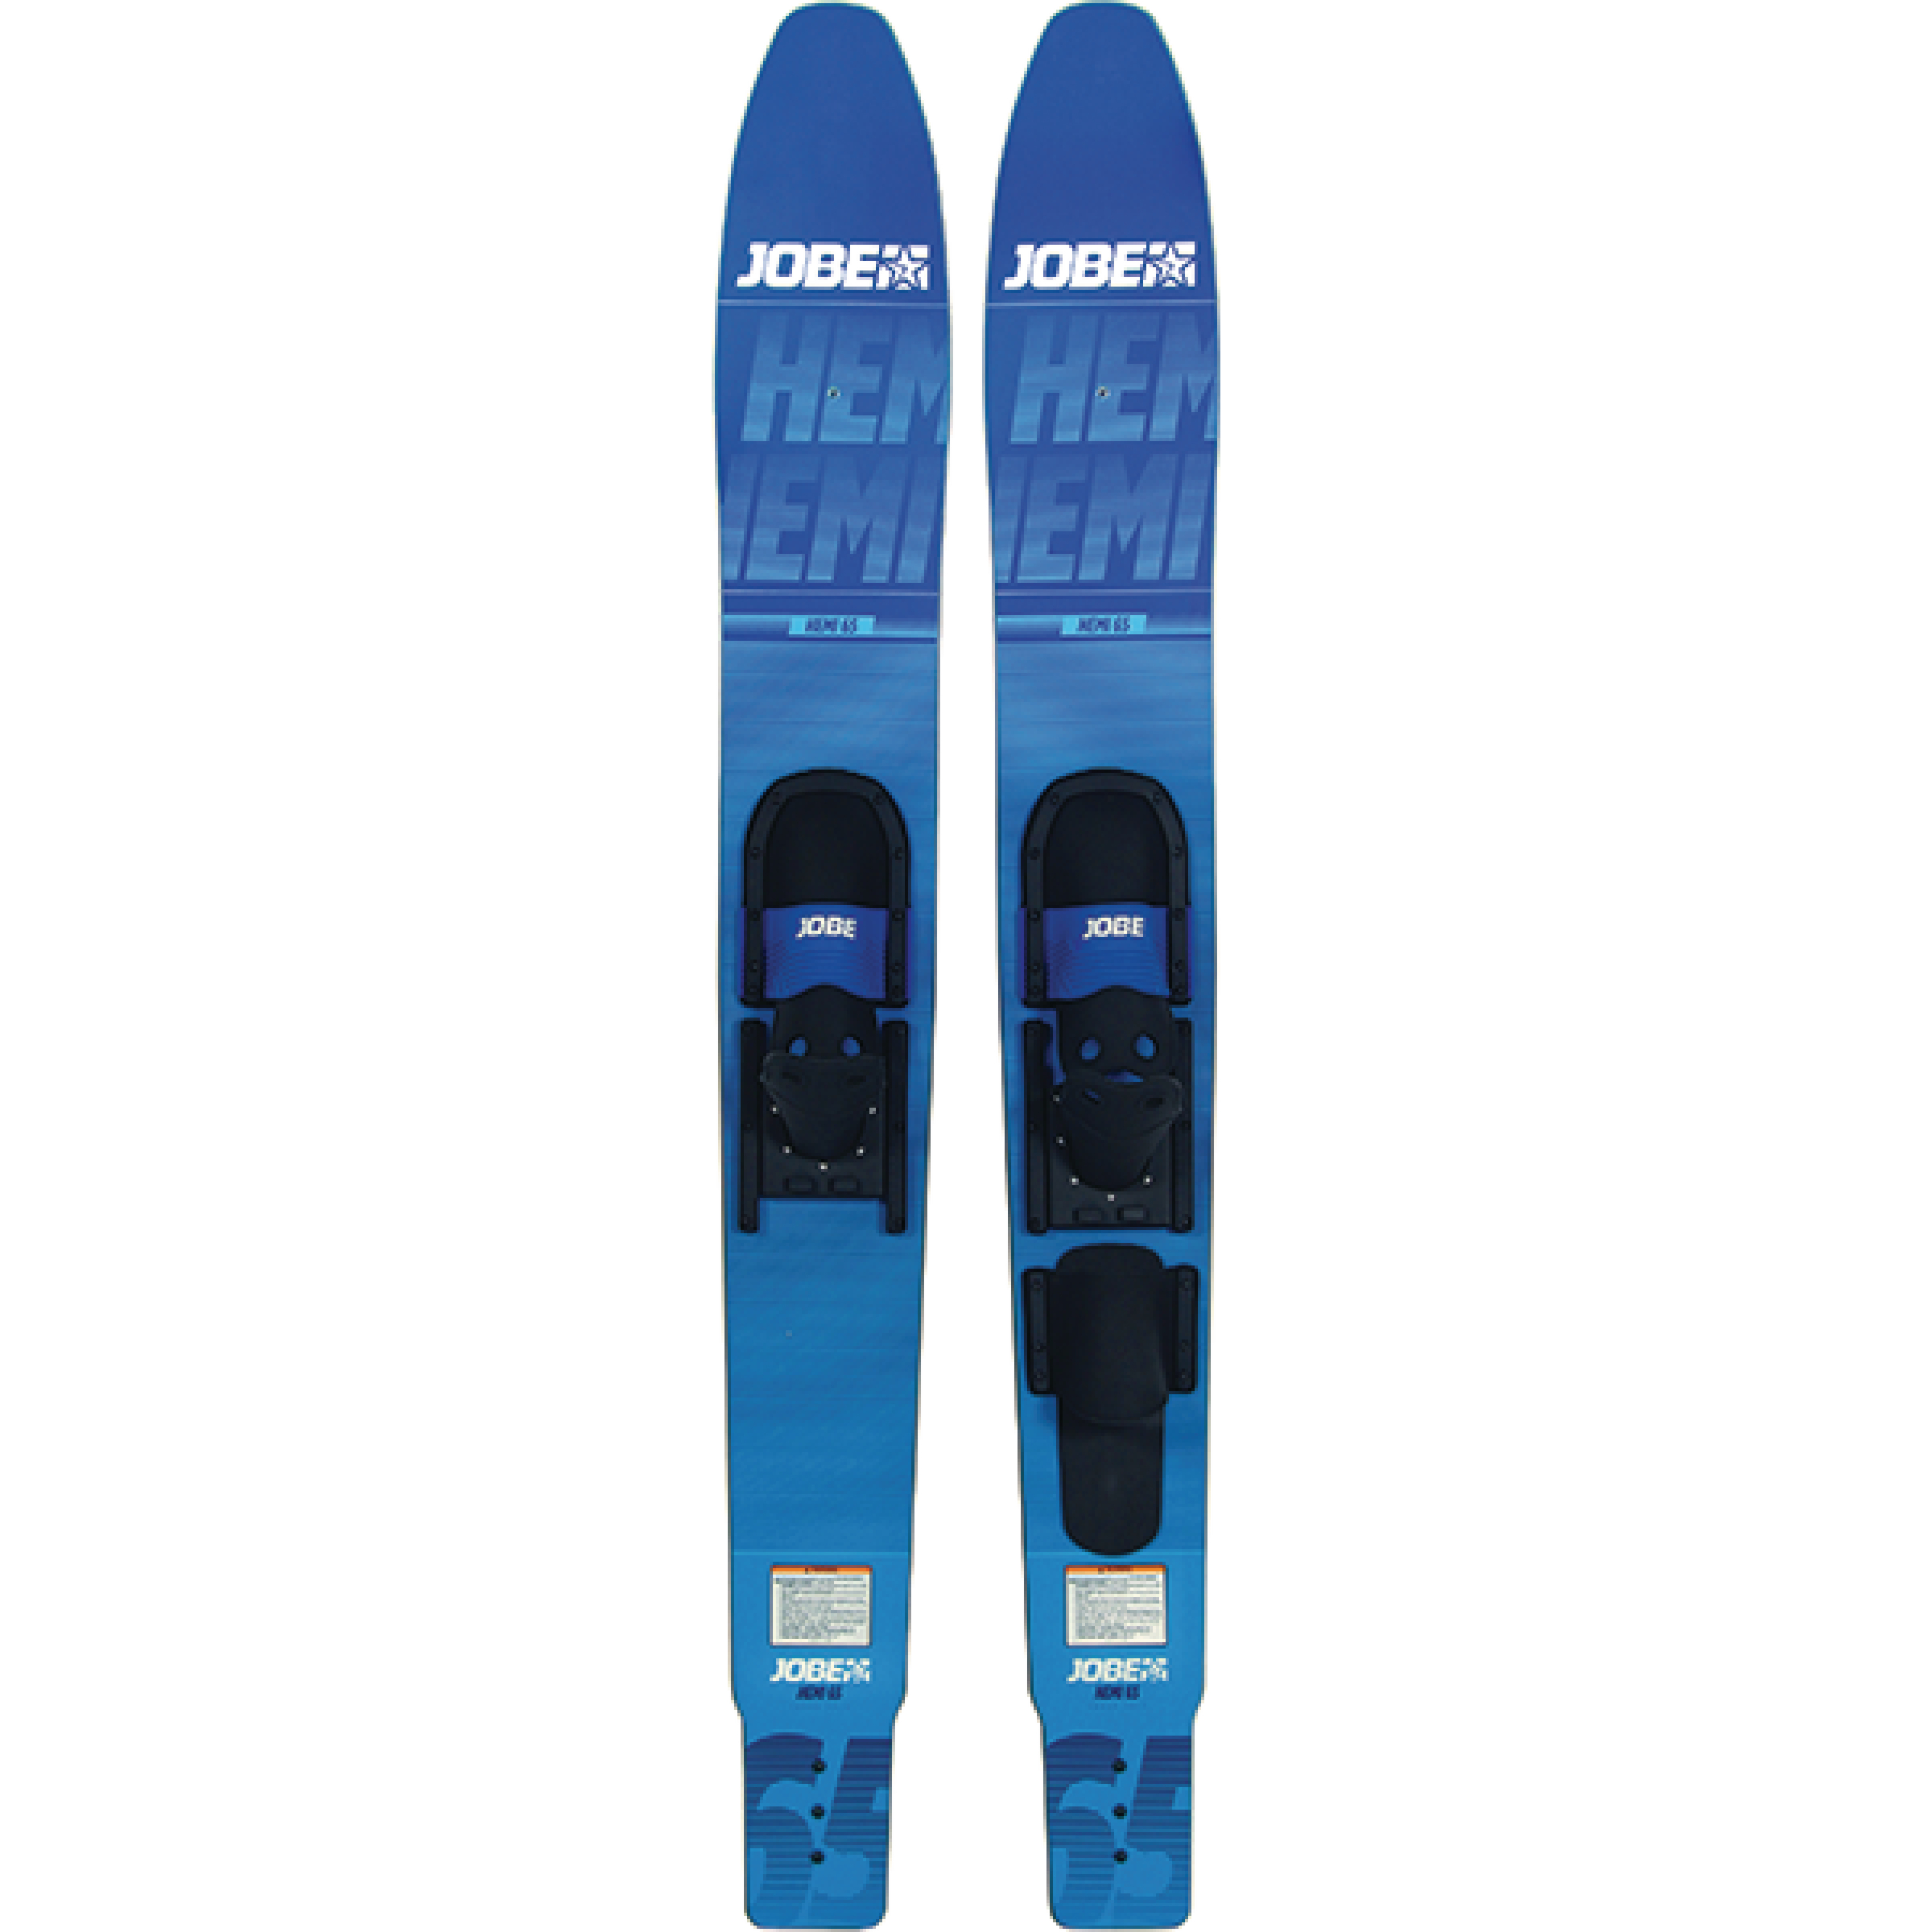 "Jobe 20241800159 Blue Hemi Jr. 59"" Combo Waterskis for Up to 120 lbs."